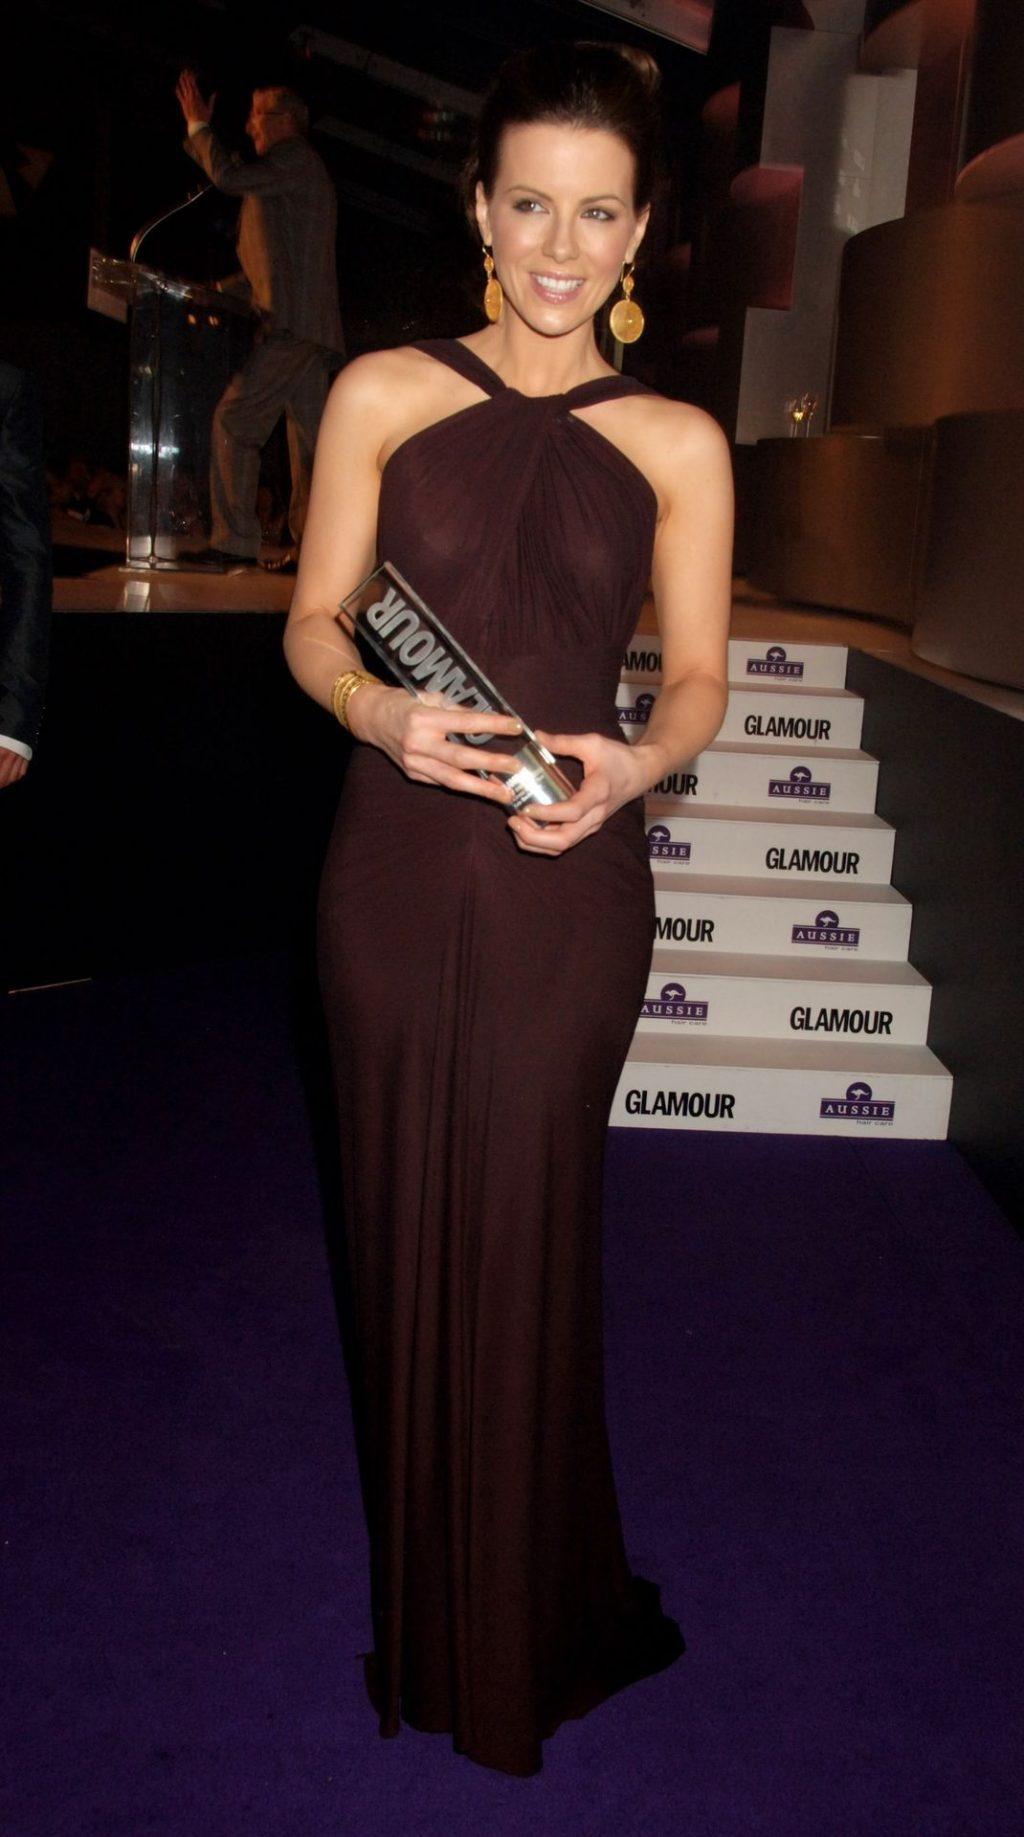 Kate Beckinsale Shows Her Tits for The Glamour Woman Awards (4 Photos)